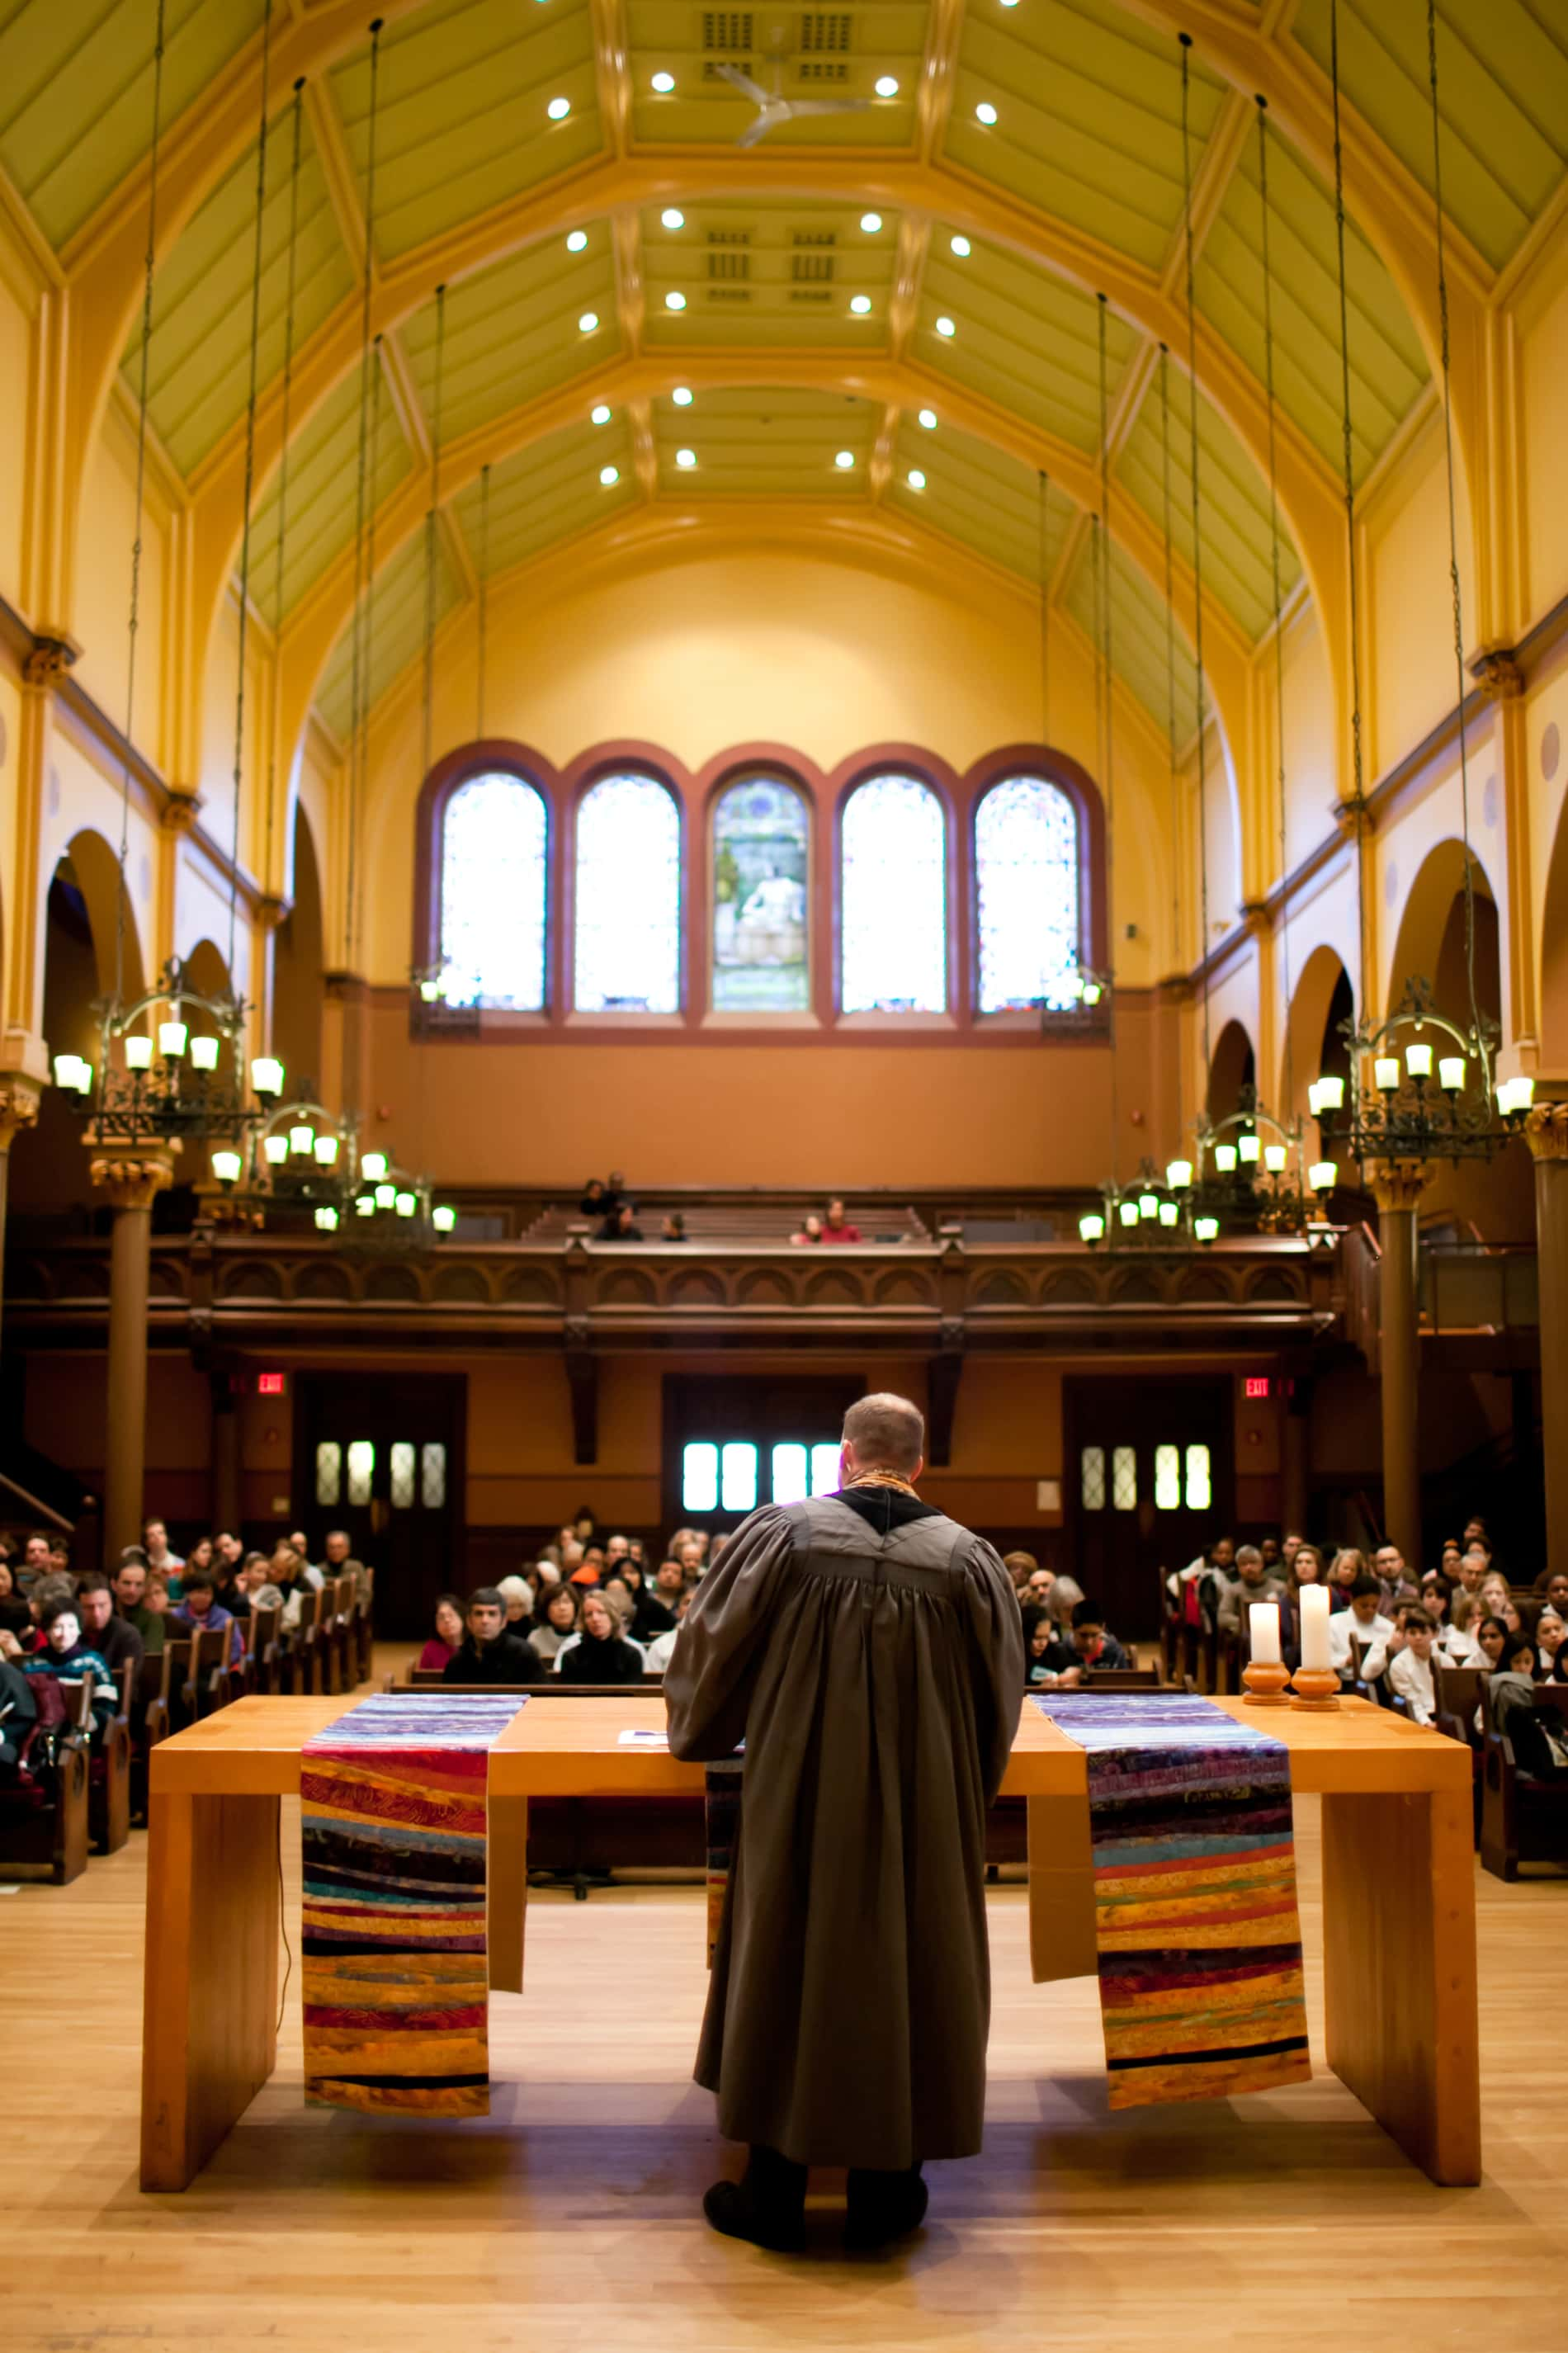 A wide angle view showing the congregation in worship in the First Church sanctuary